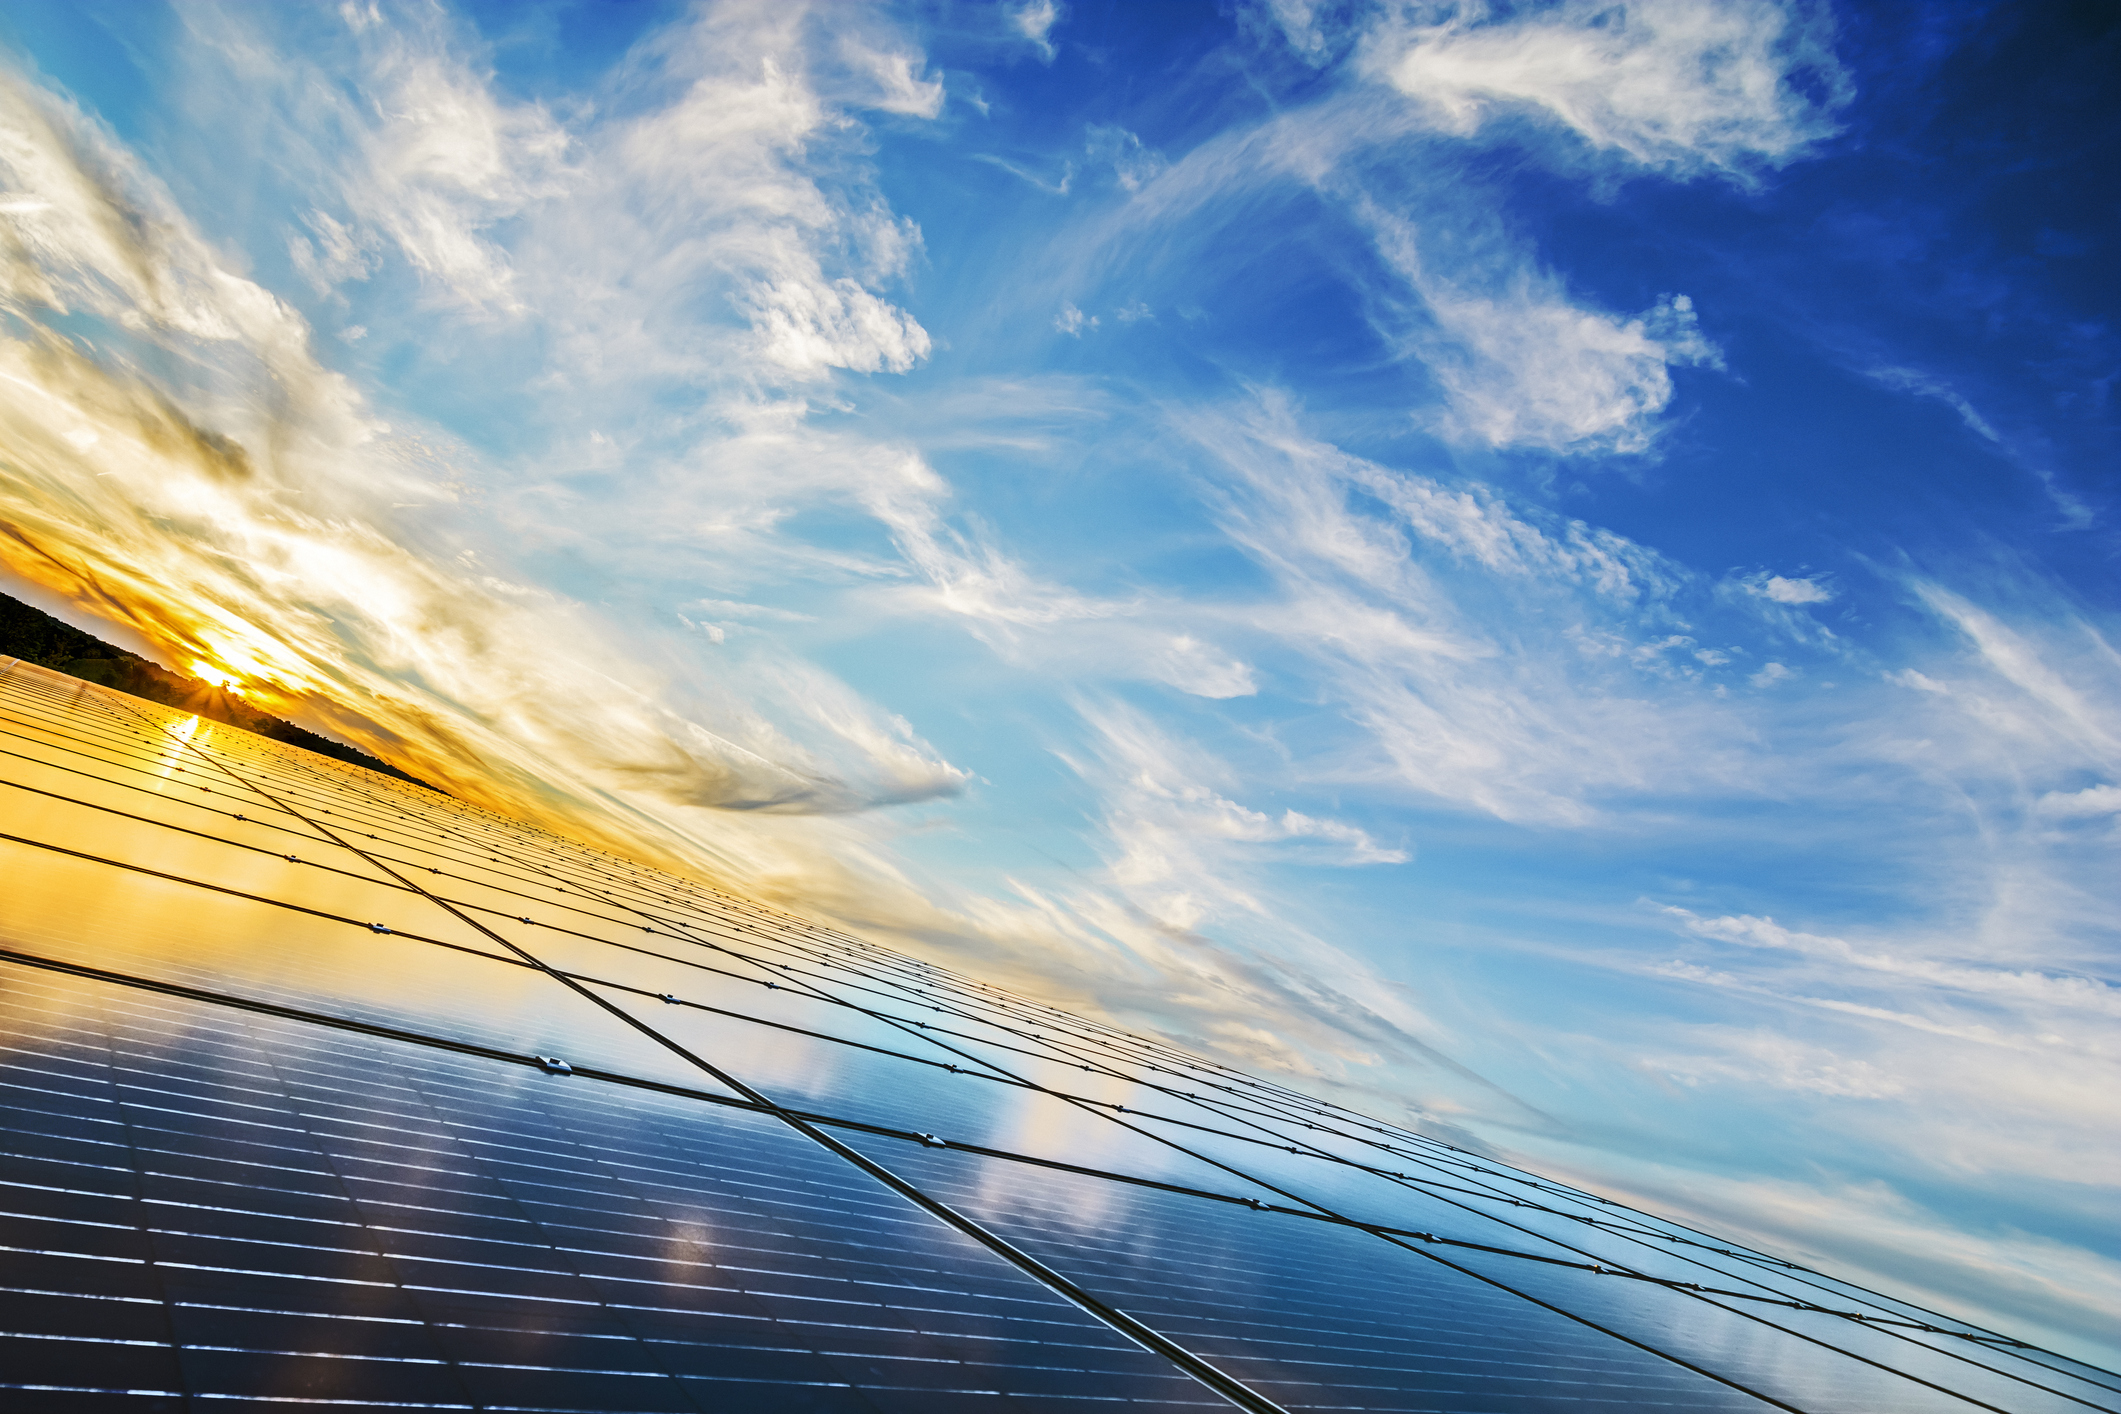 How Do Different Countries Incentive Solar Power?